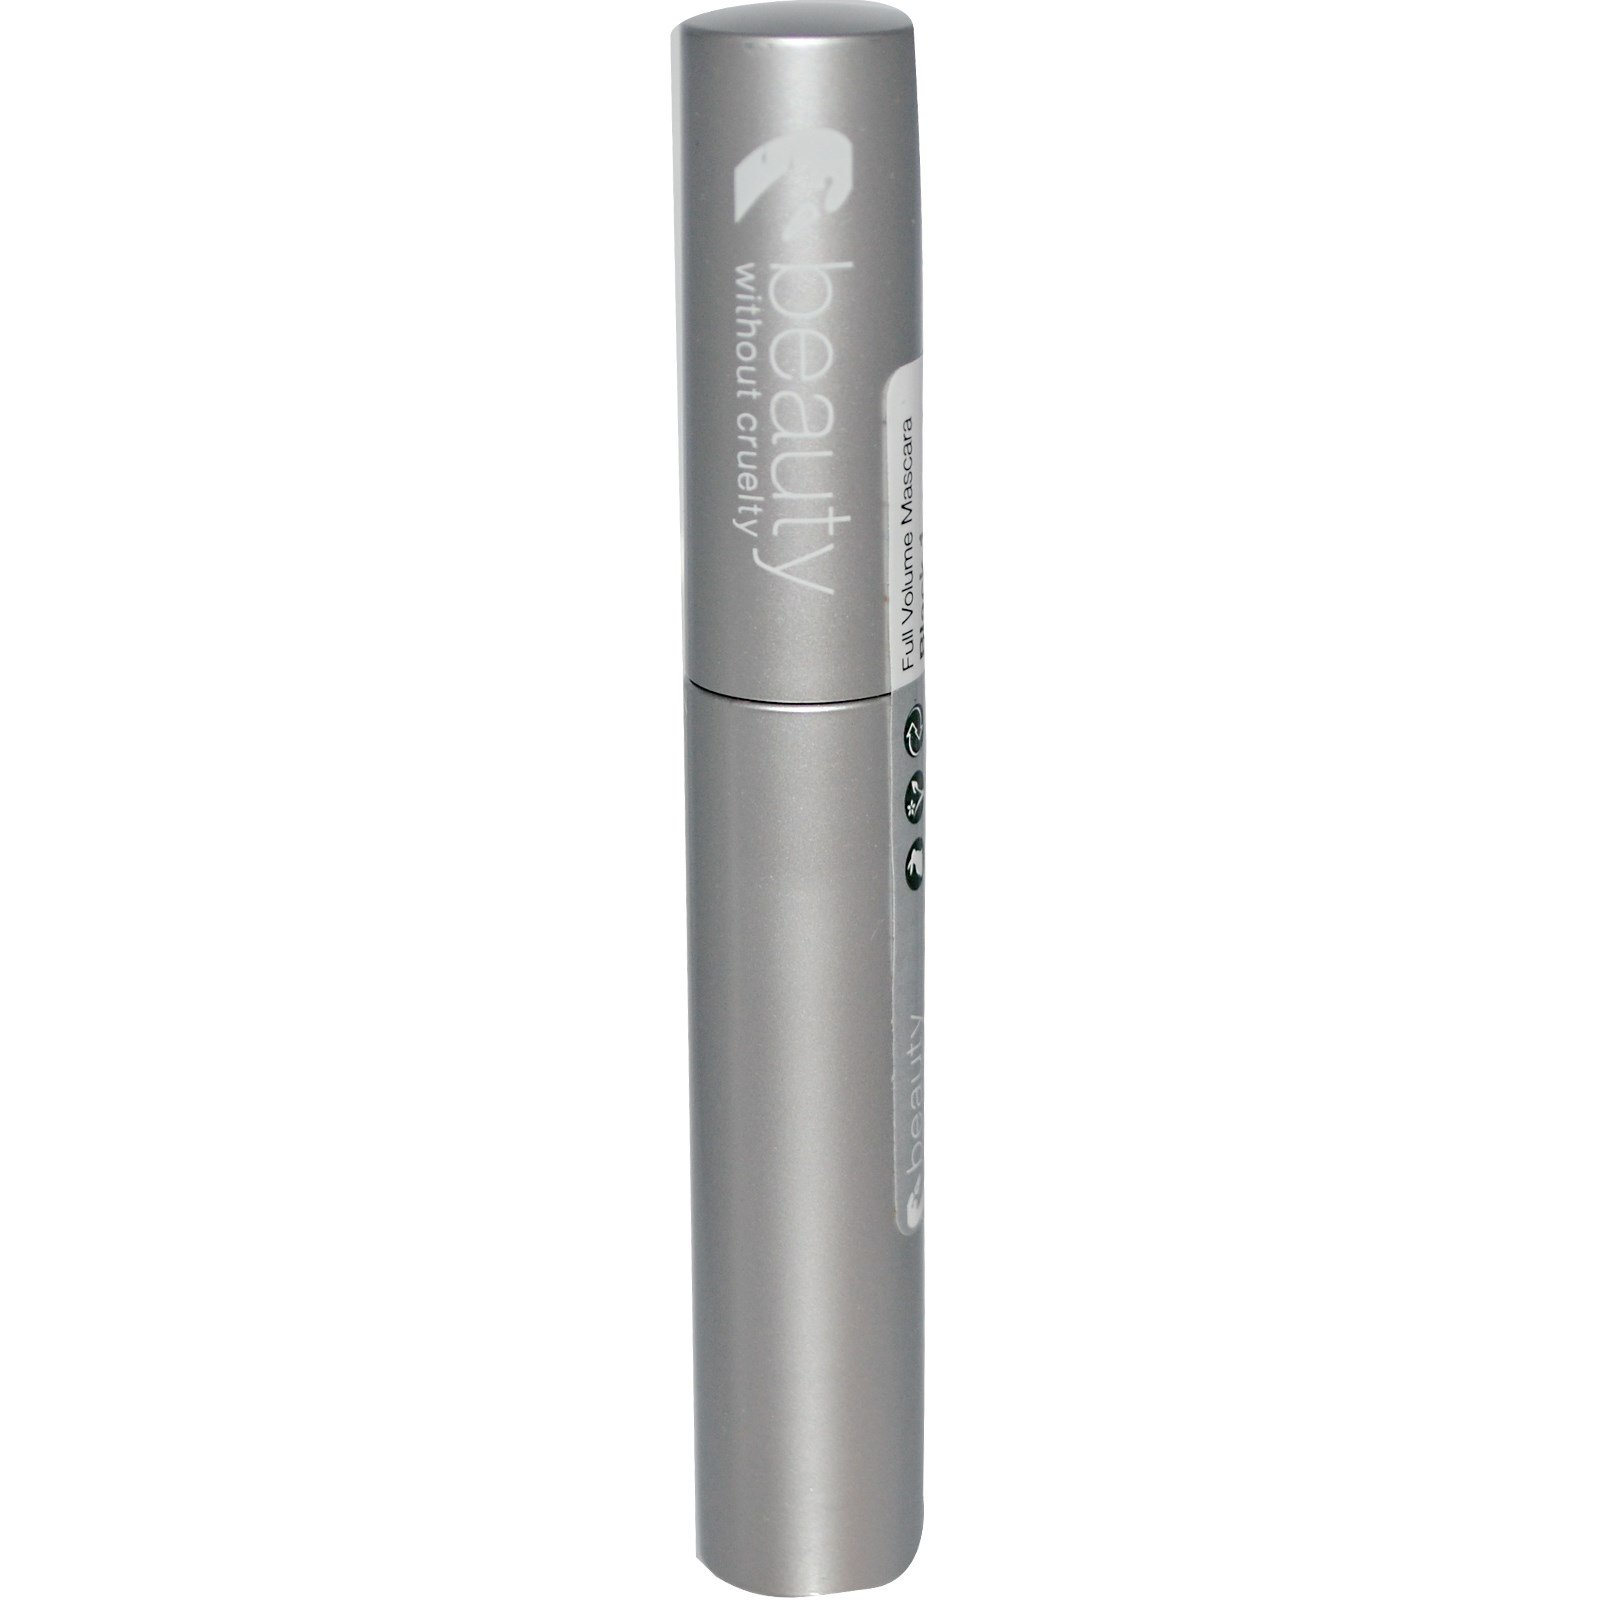 597a786d1b9 Beauty Without Cruelty, Full Volume Mascara, Black 1, 0.27 fl oz (8 ...